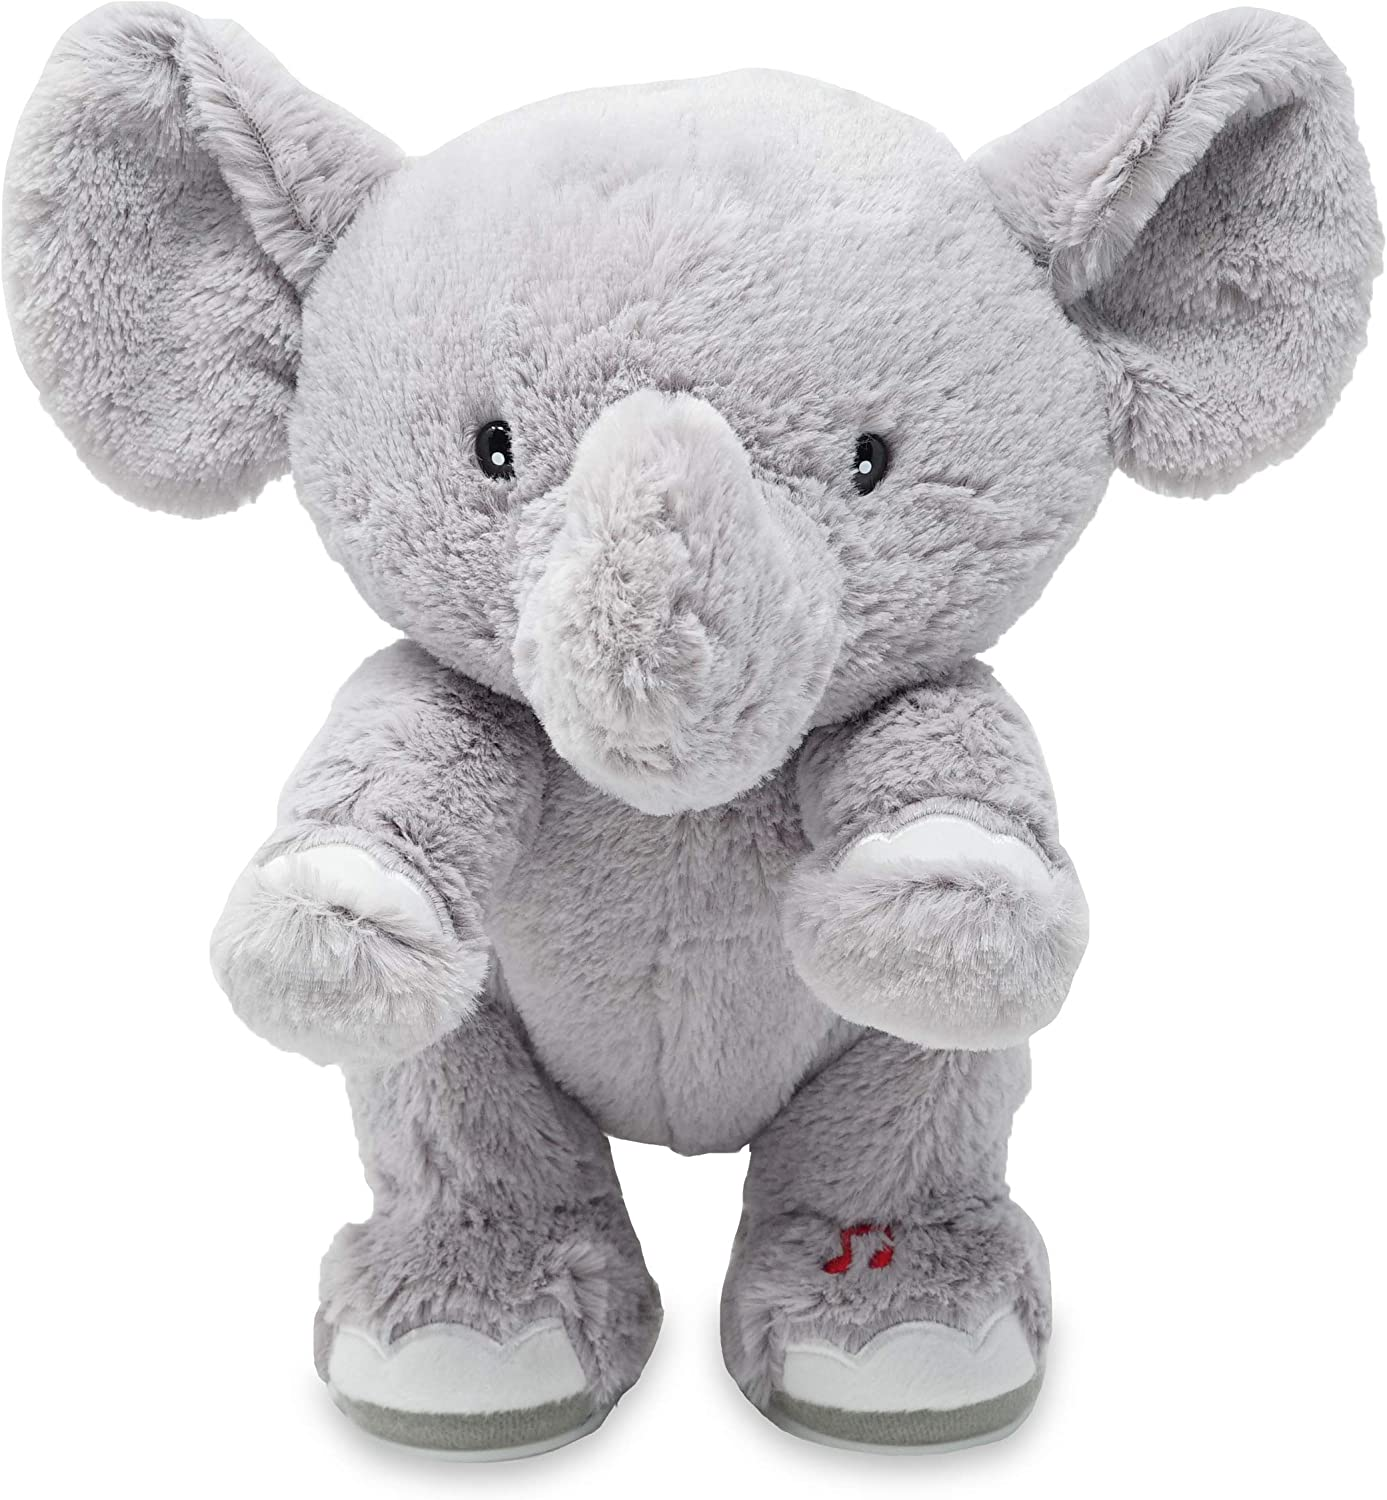 Adorable Pig or Elephant Performs Head Cuddle Barn and Toes Knees Head to Toe 12 Animated Stuffed Animal Plush Toy Shoulders Head to Toe Tucker